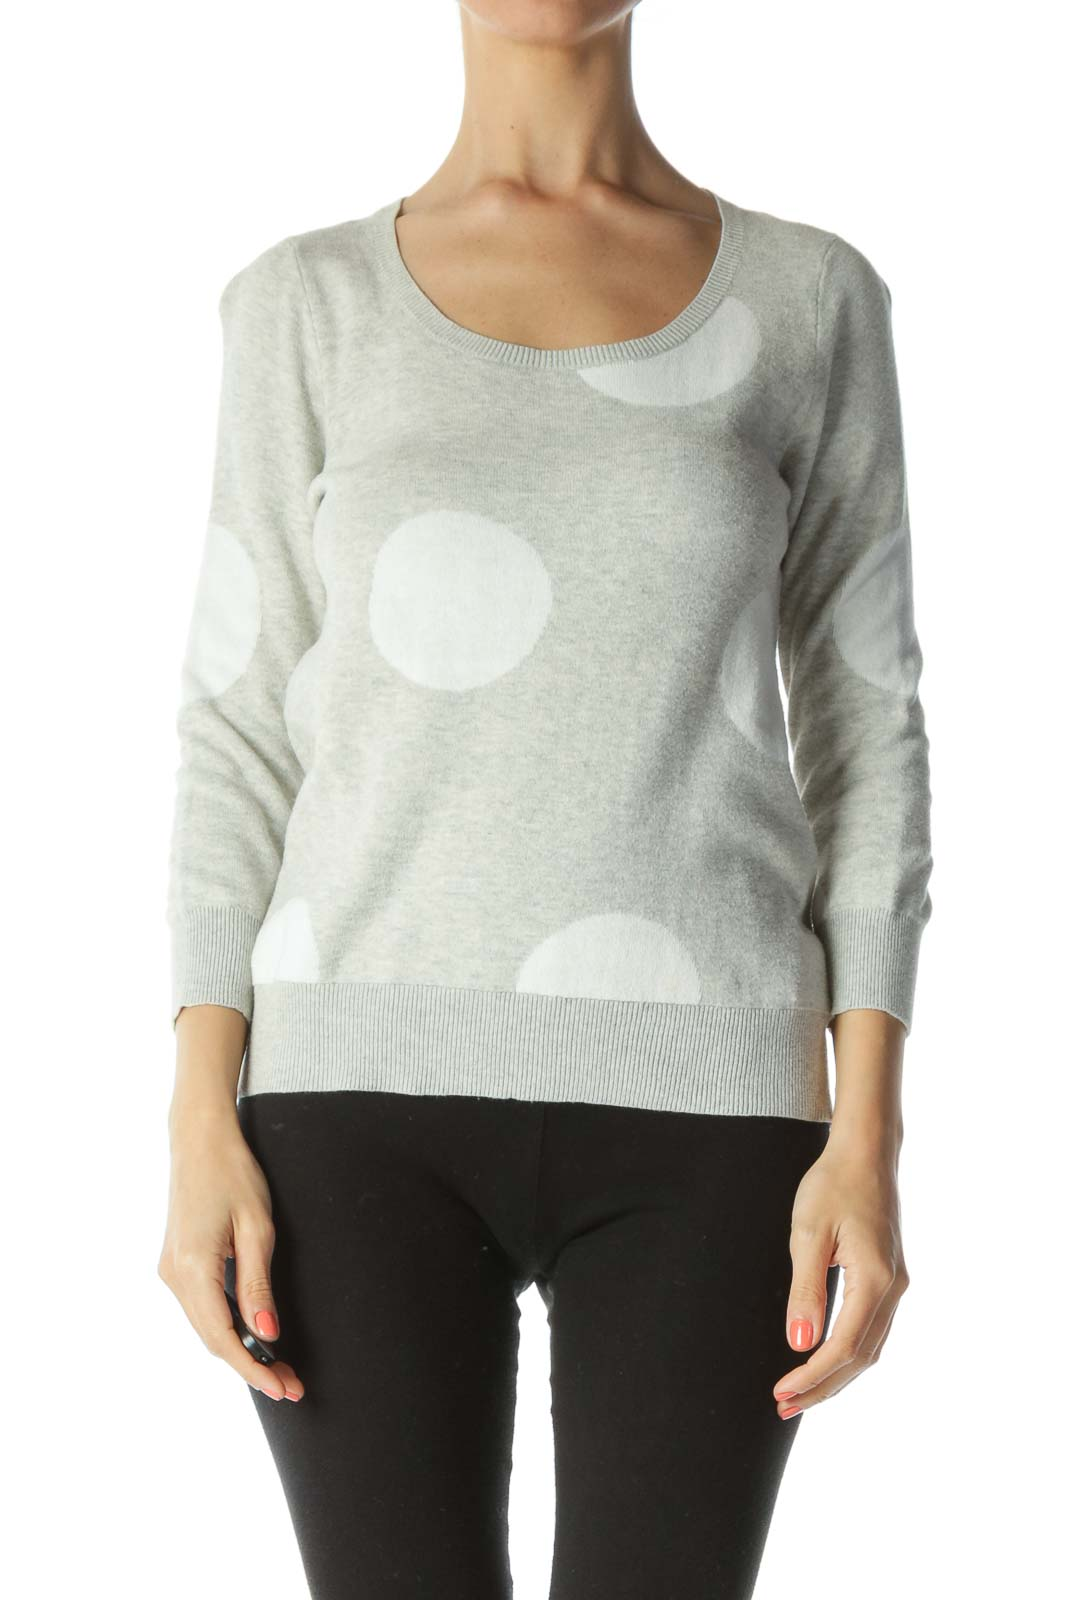 Gray/White 100% Cotton Polka-Dot Pullover Sweater